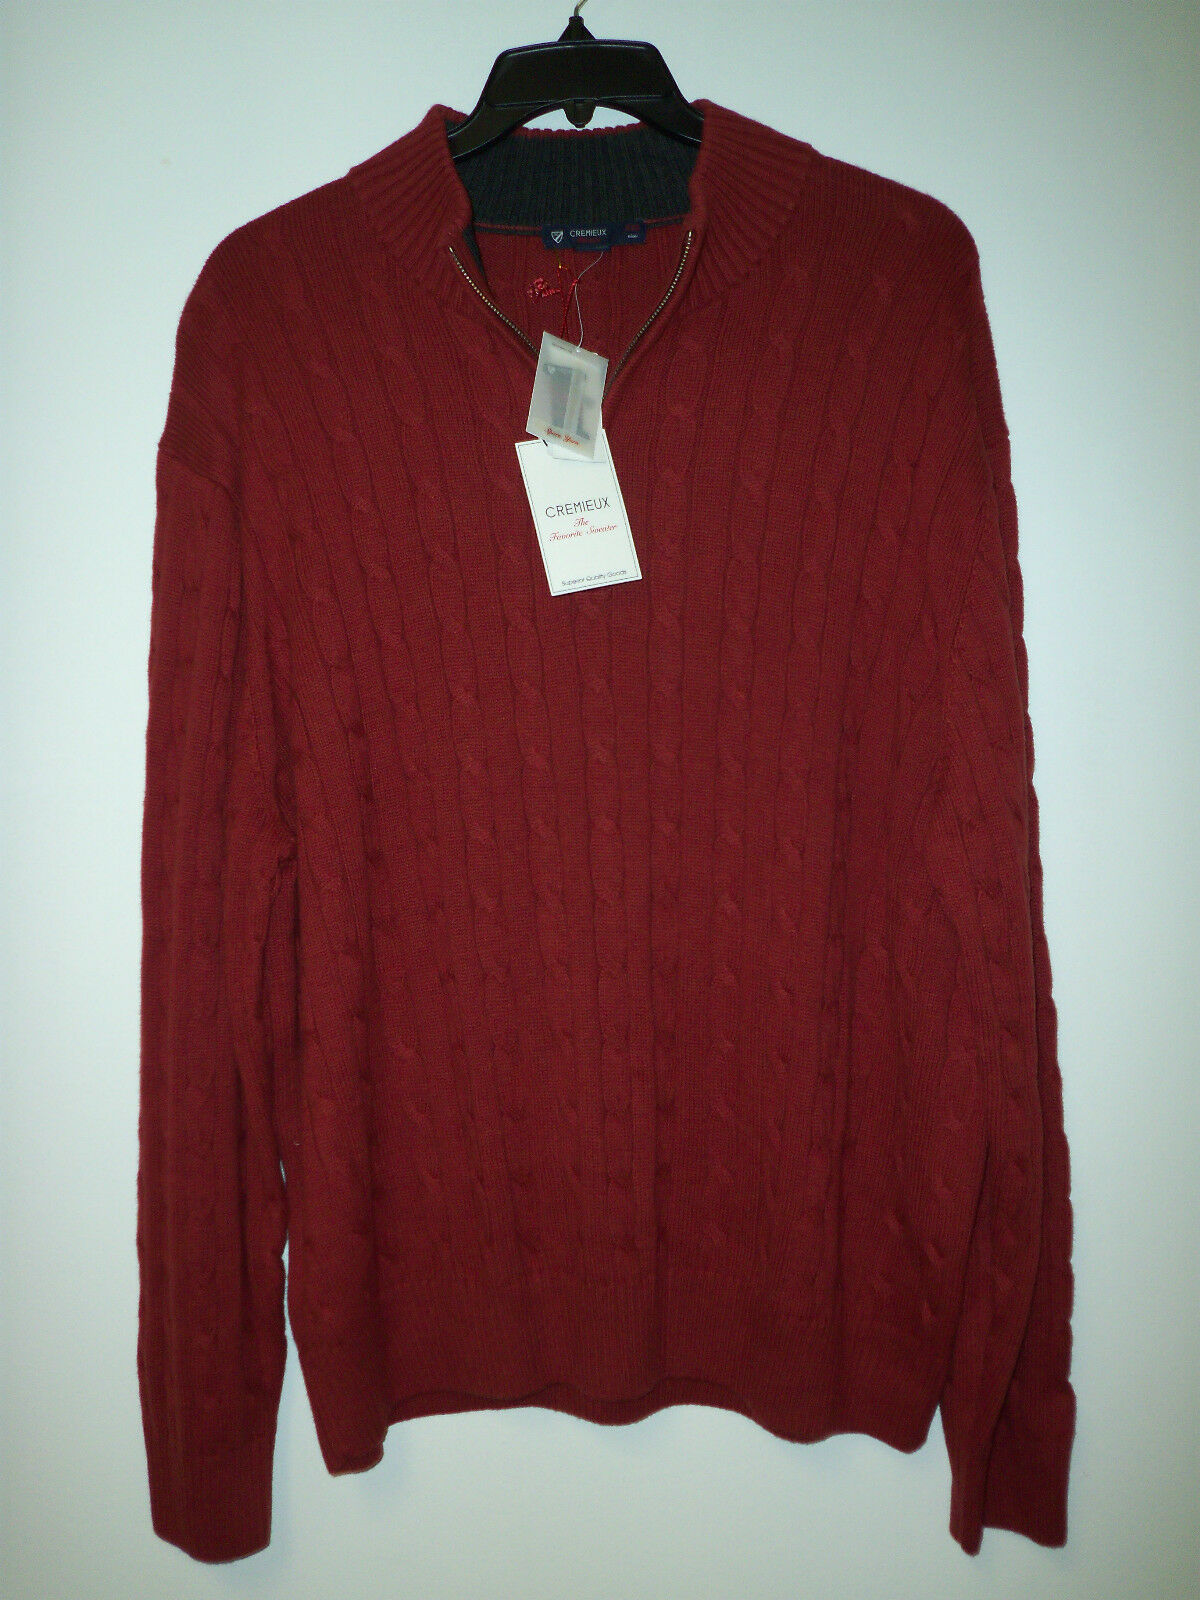 Cremieux Collection New Mens Red Heather 1 2 Zip Sweater XXL Shirt